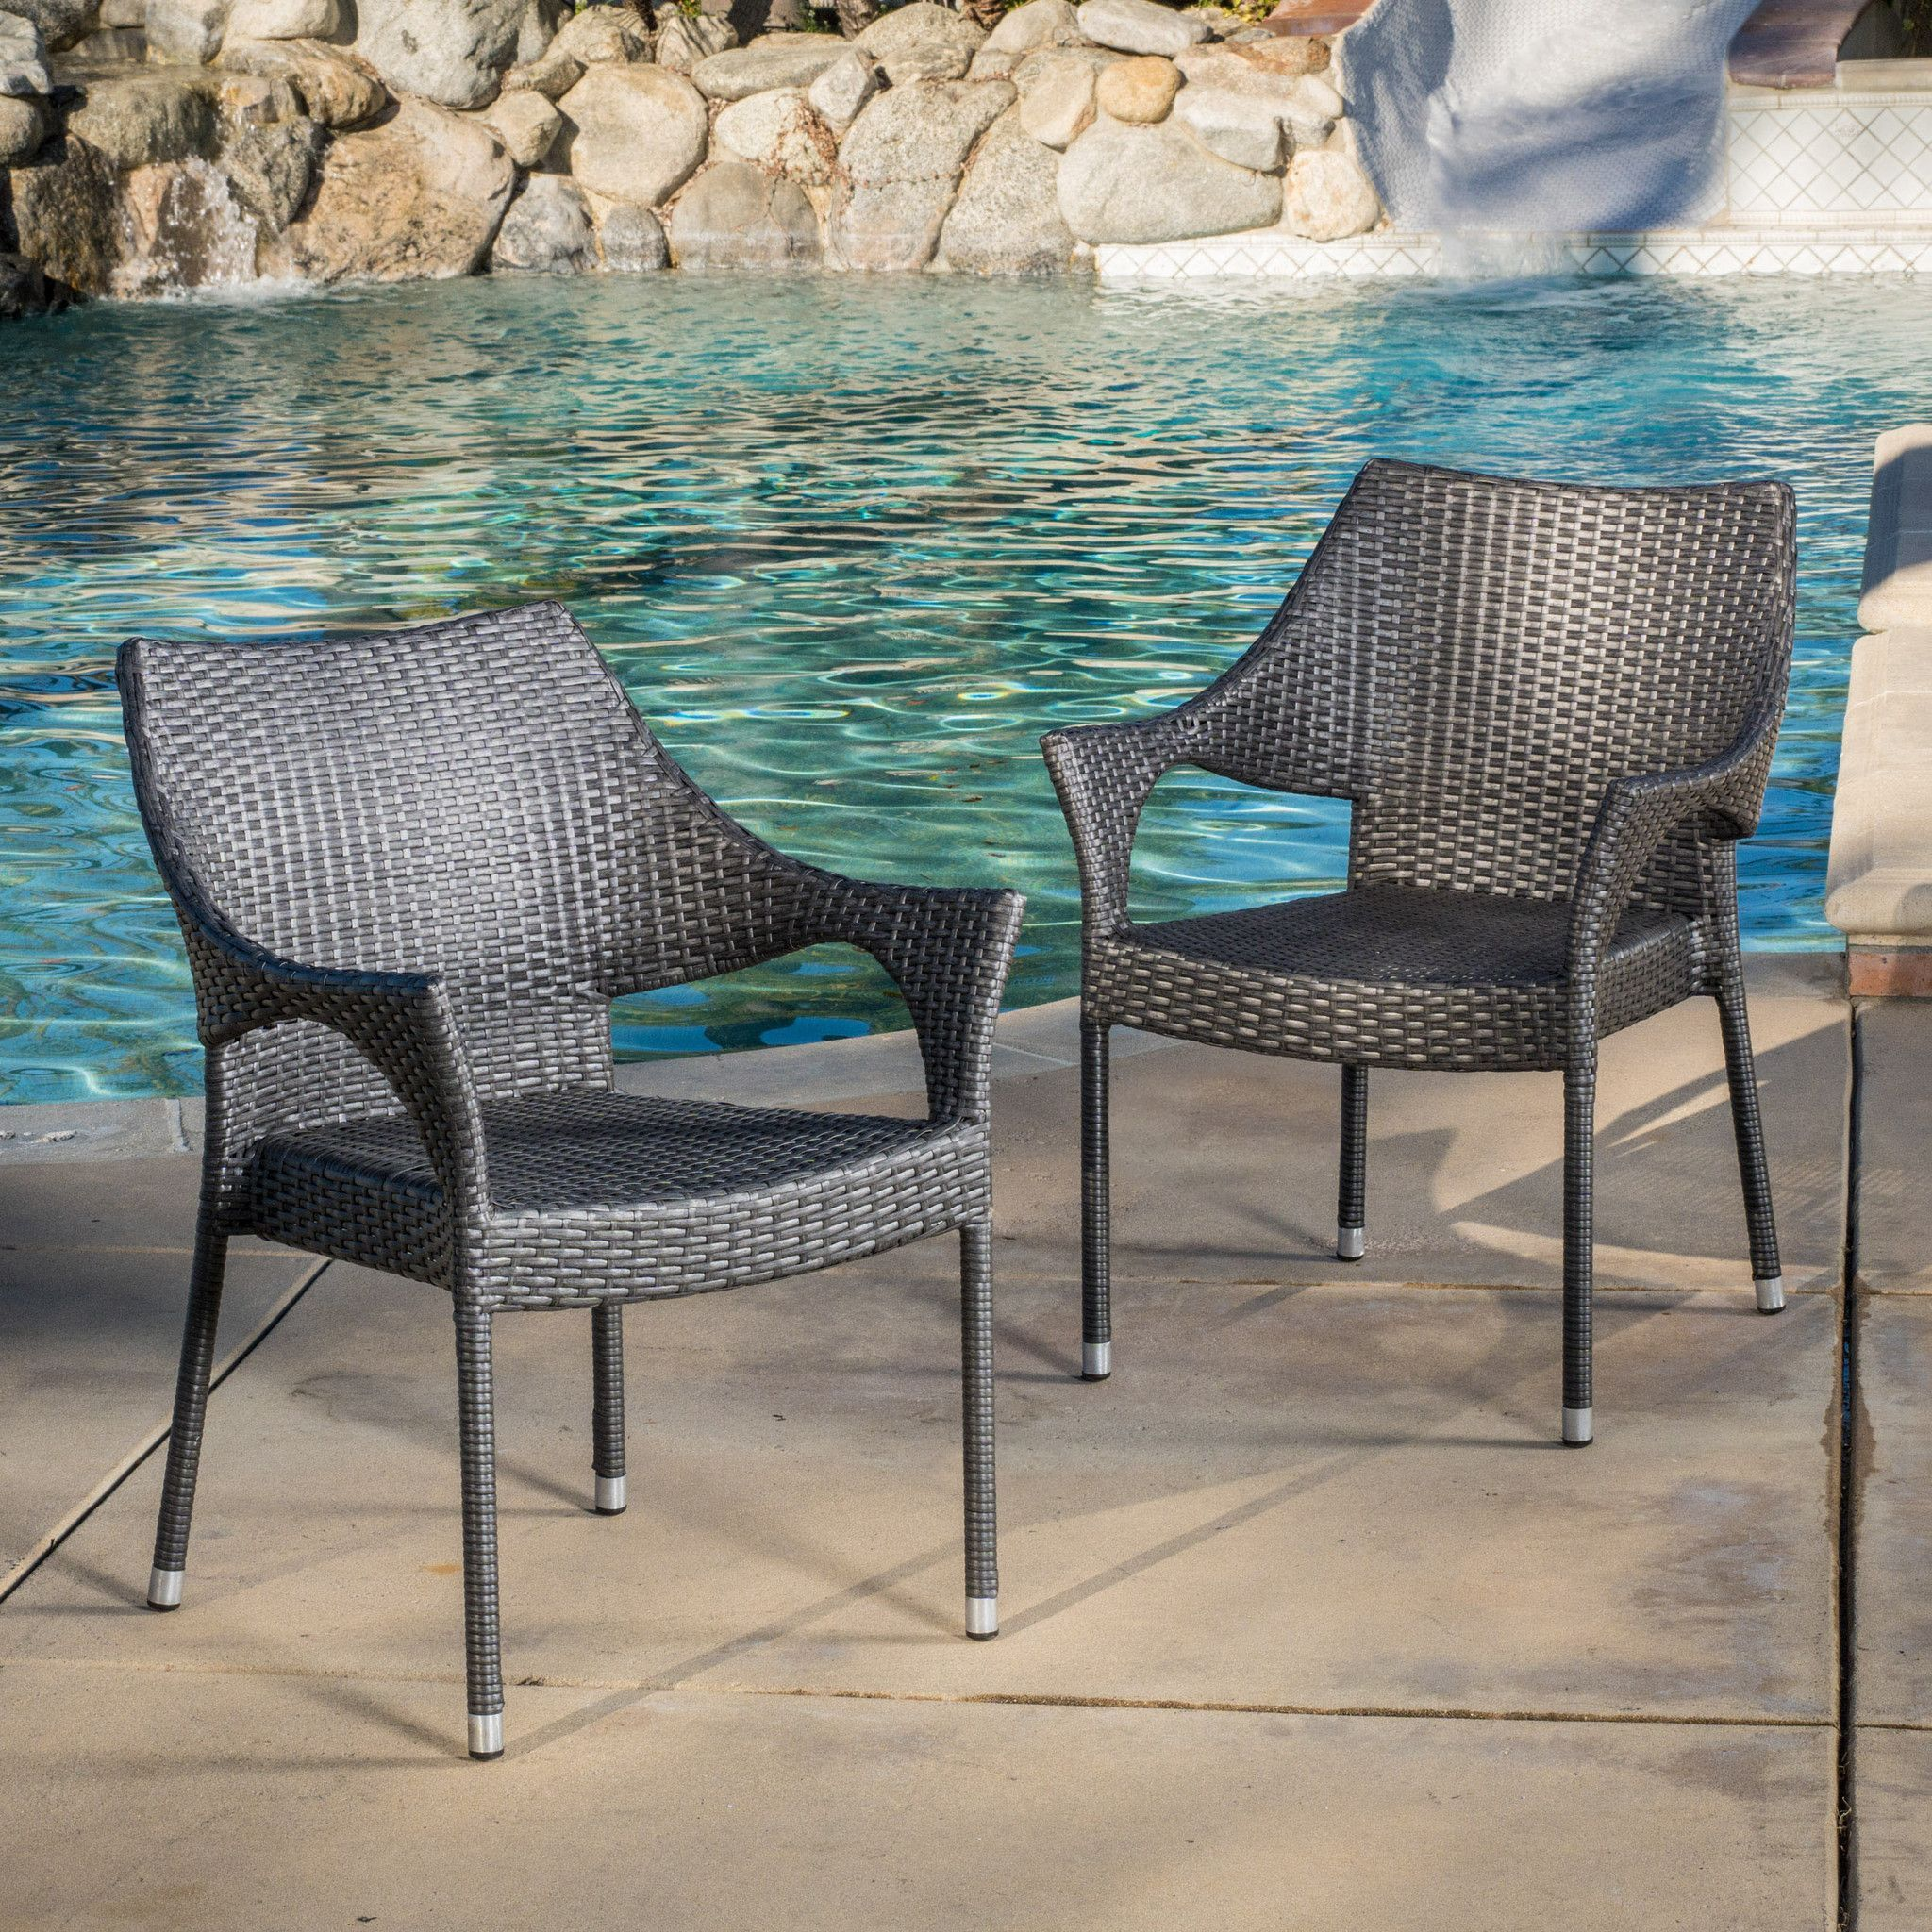 wicker chairs by cushions chair free christopher piece shipping home outdoor overstock product set chat garden today knight with